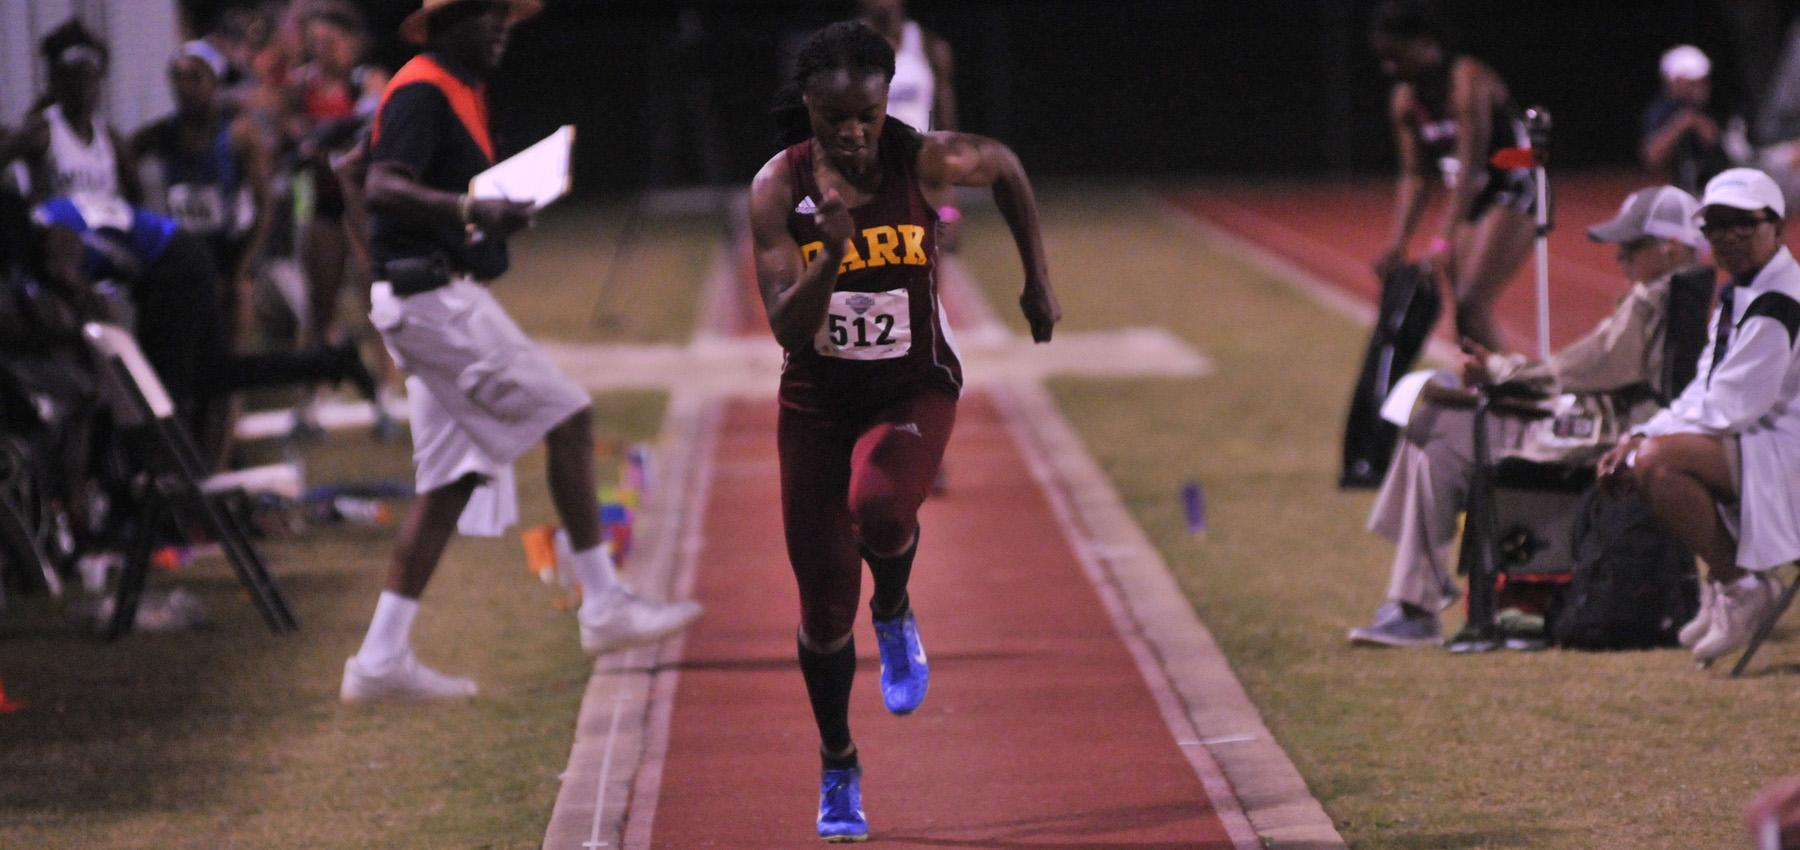 Fletcher Now Two-Time Outdoor All-American After Seventh-Place Finish in 200-Meter Dash